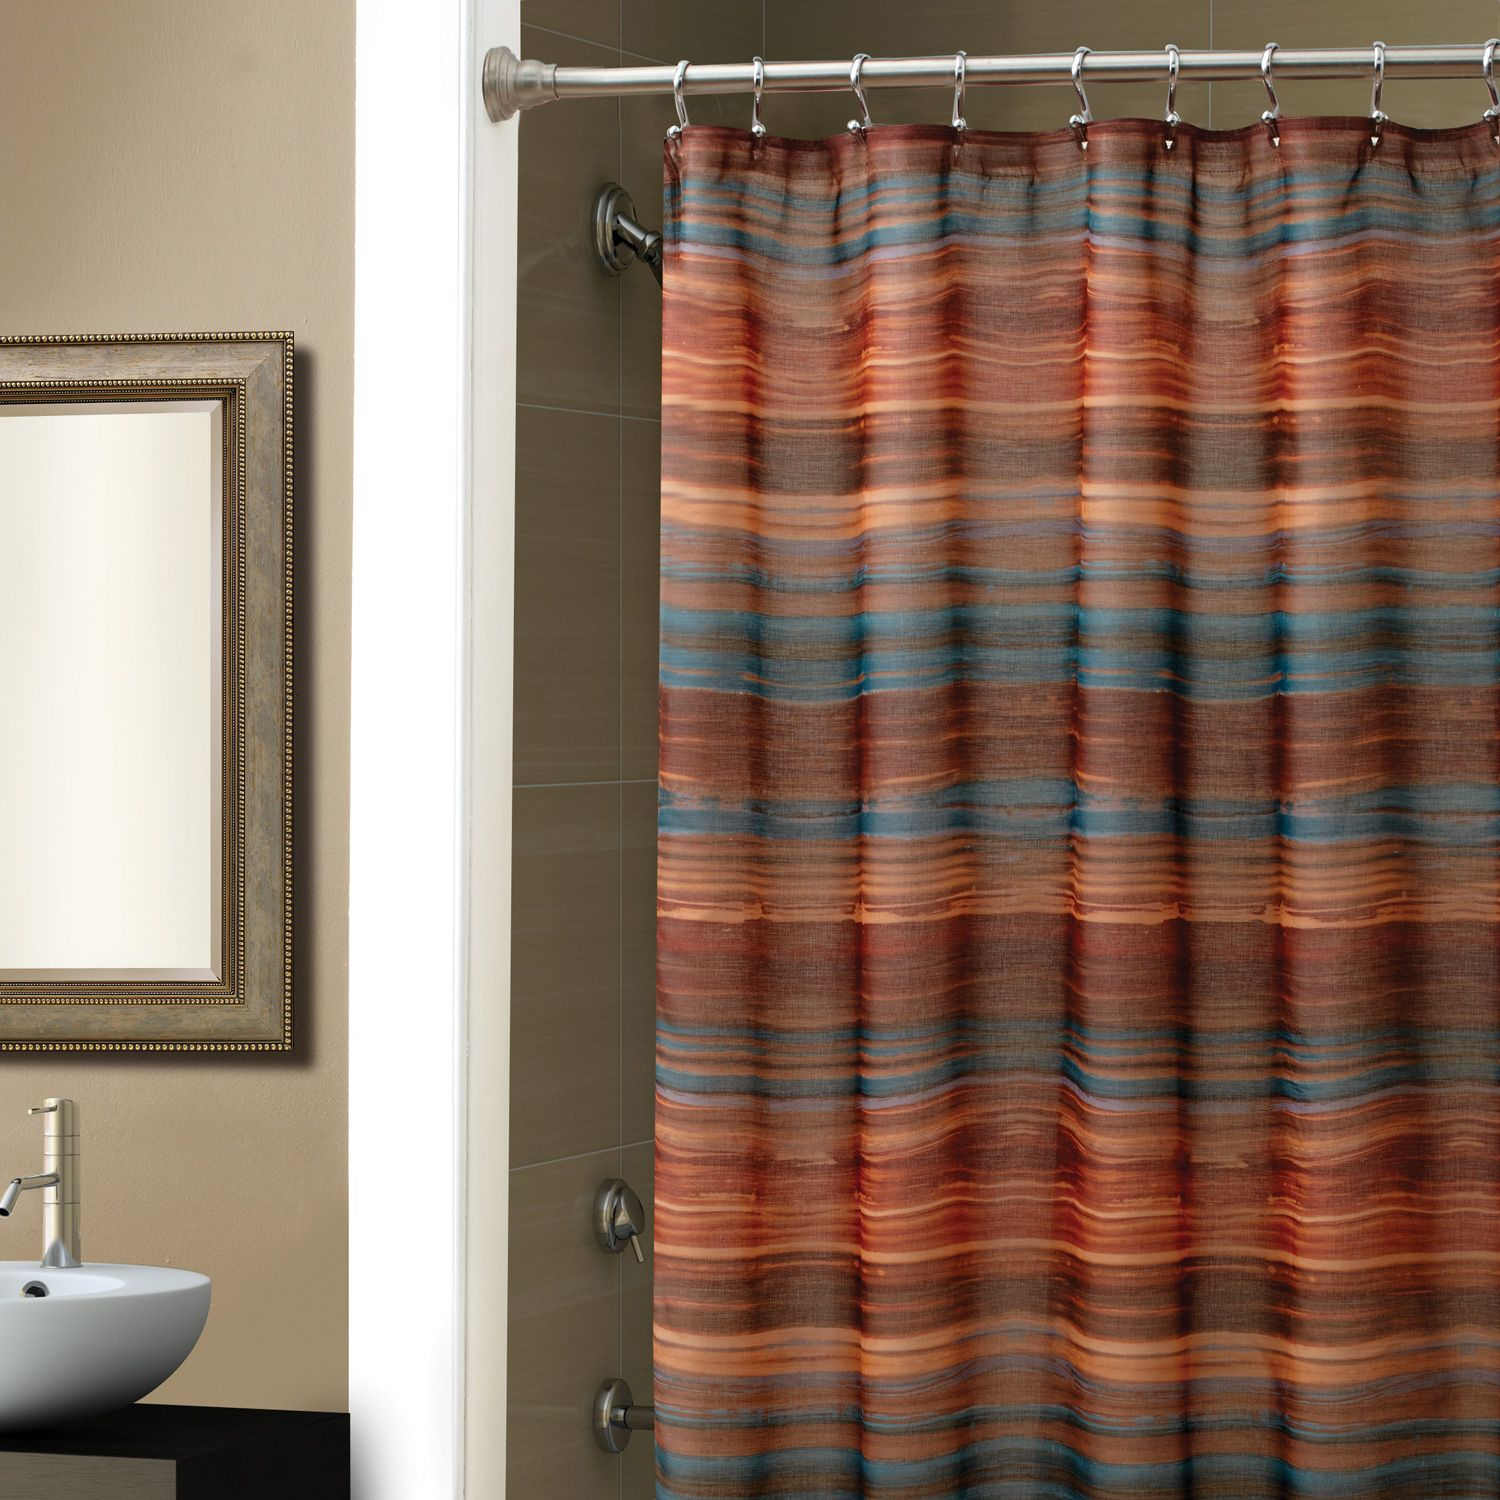 Shower Favorite Eye Catching Croscill Shower Curtains Spa Tile pertaining to measurements 1500 X 1500